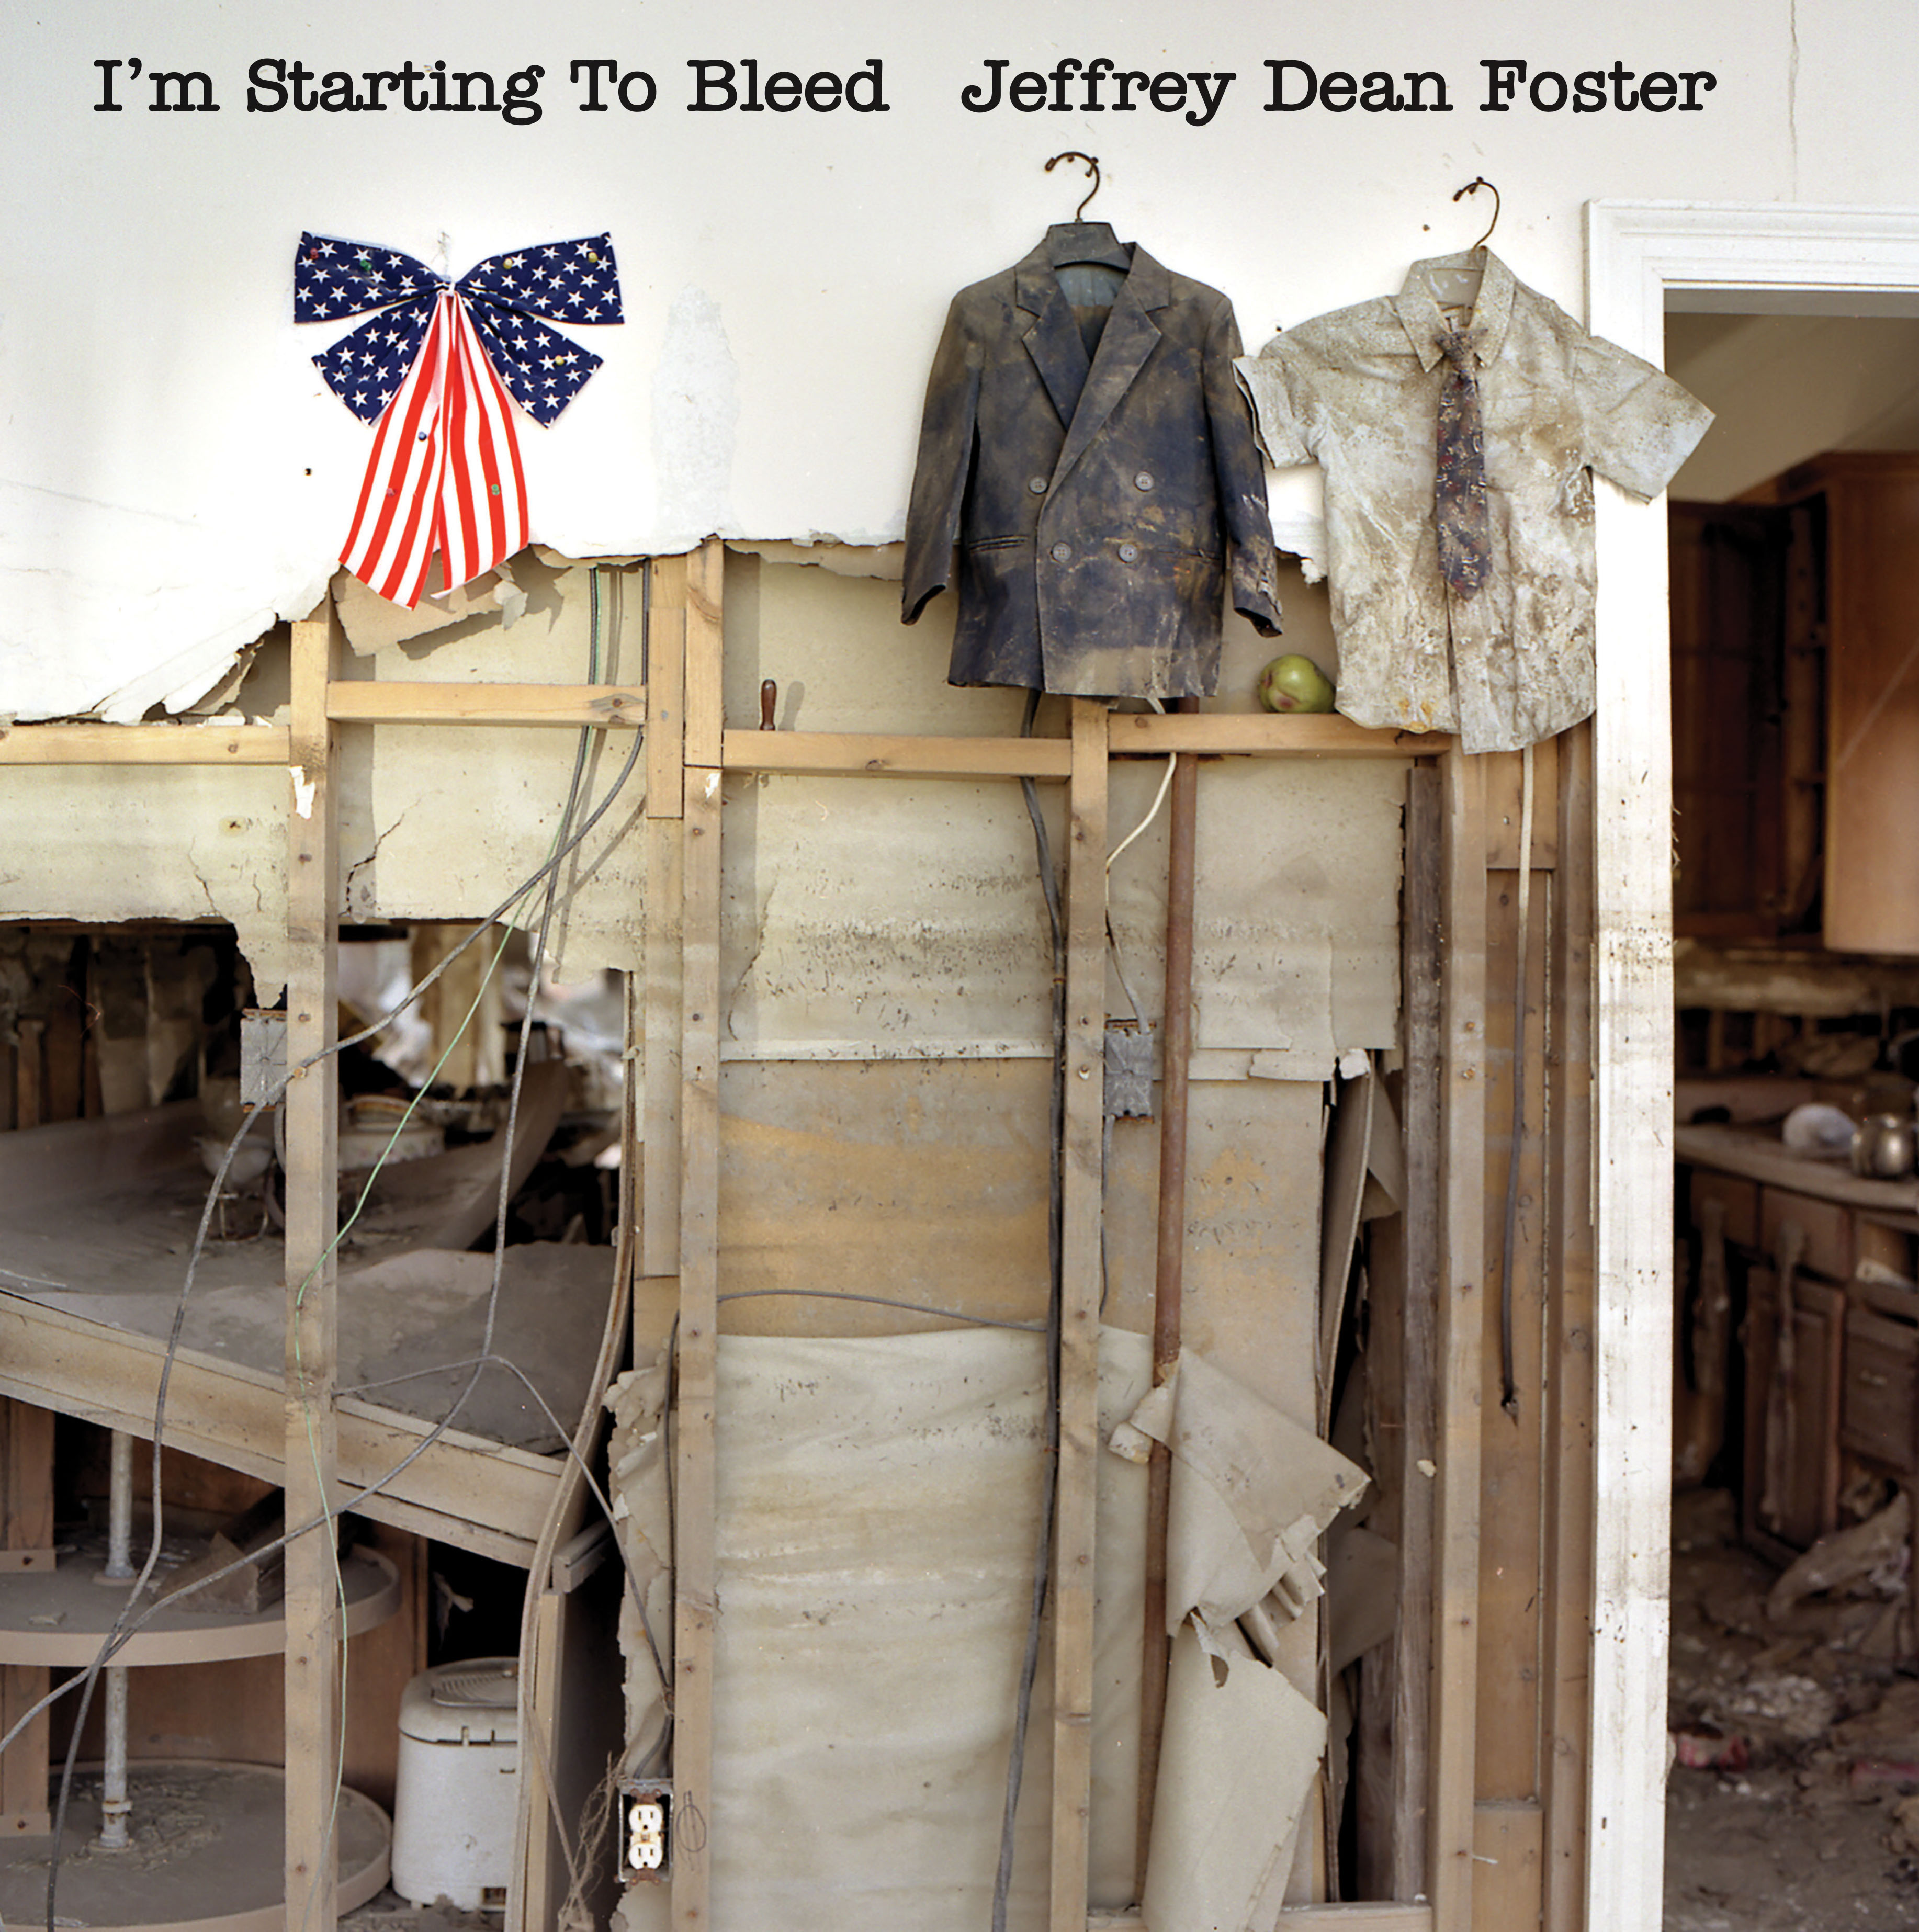 Jeffrey Dean Foster - I'm Starting To Bleed [RSD Drops 2021]